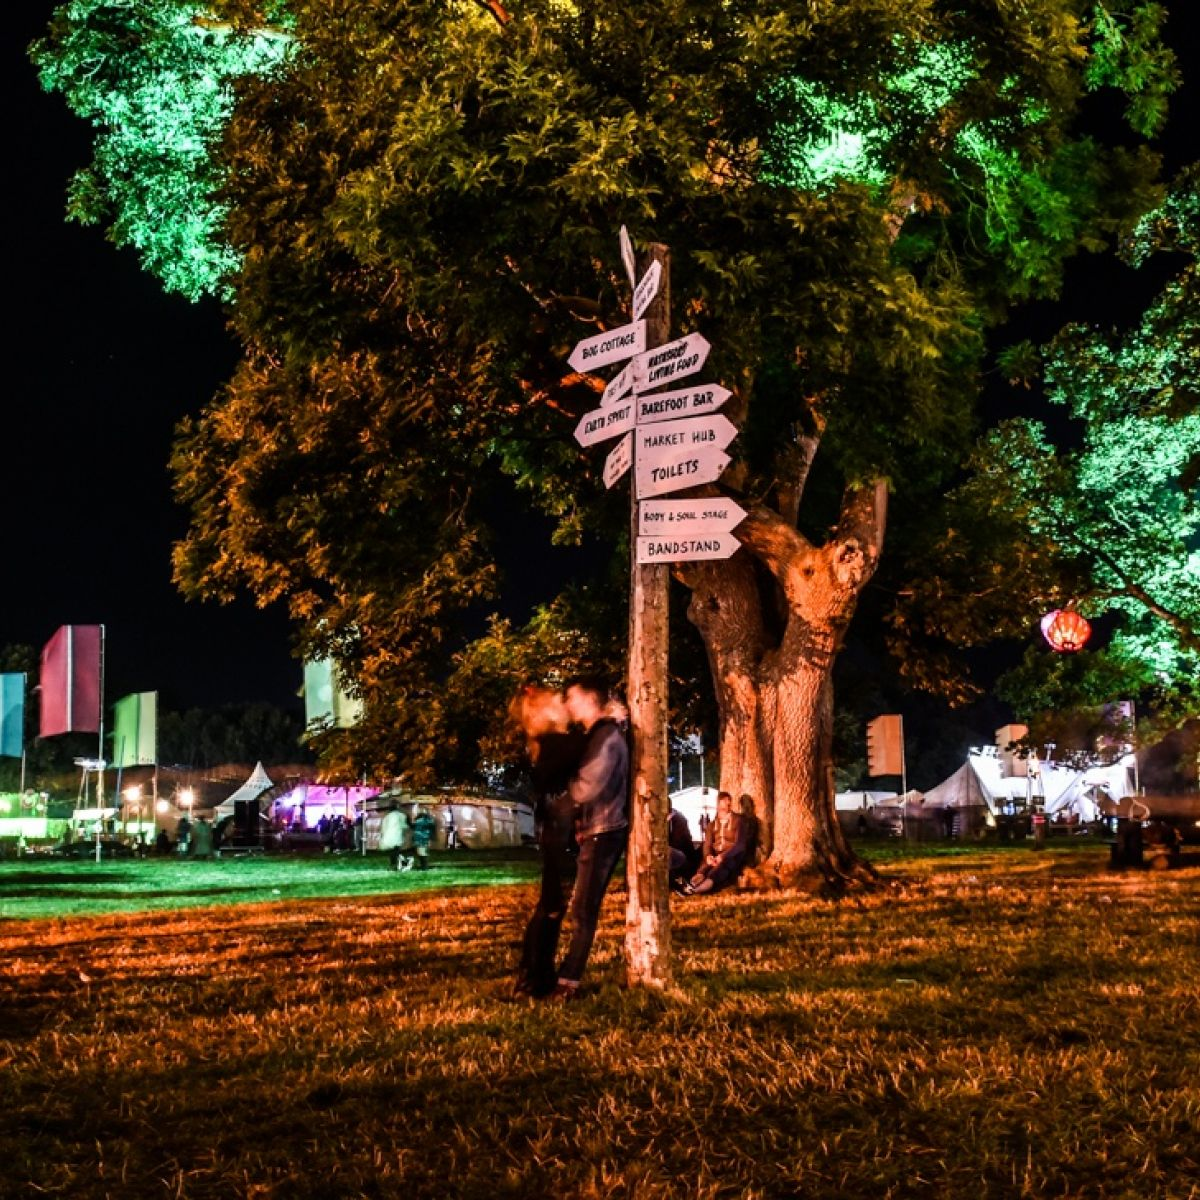 9c16172677828 Your complete guide to the Electric Picnic